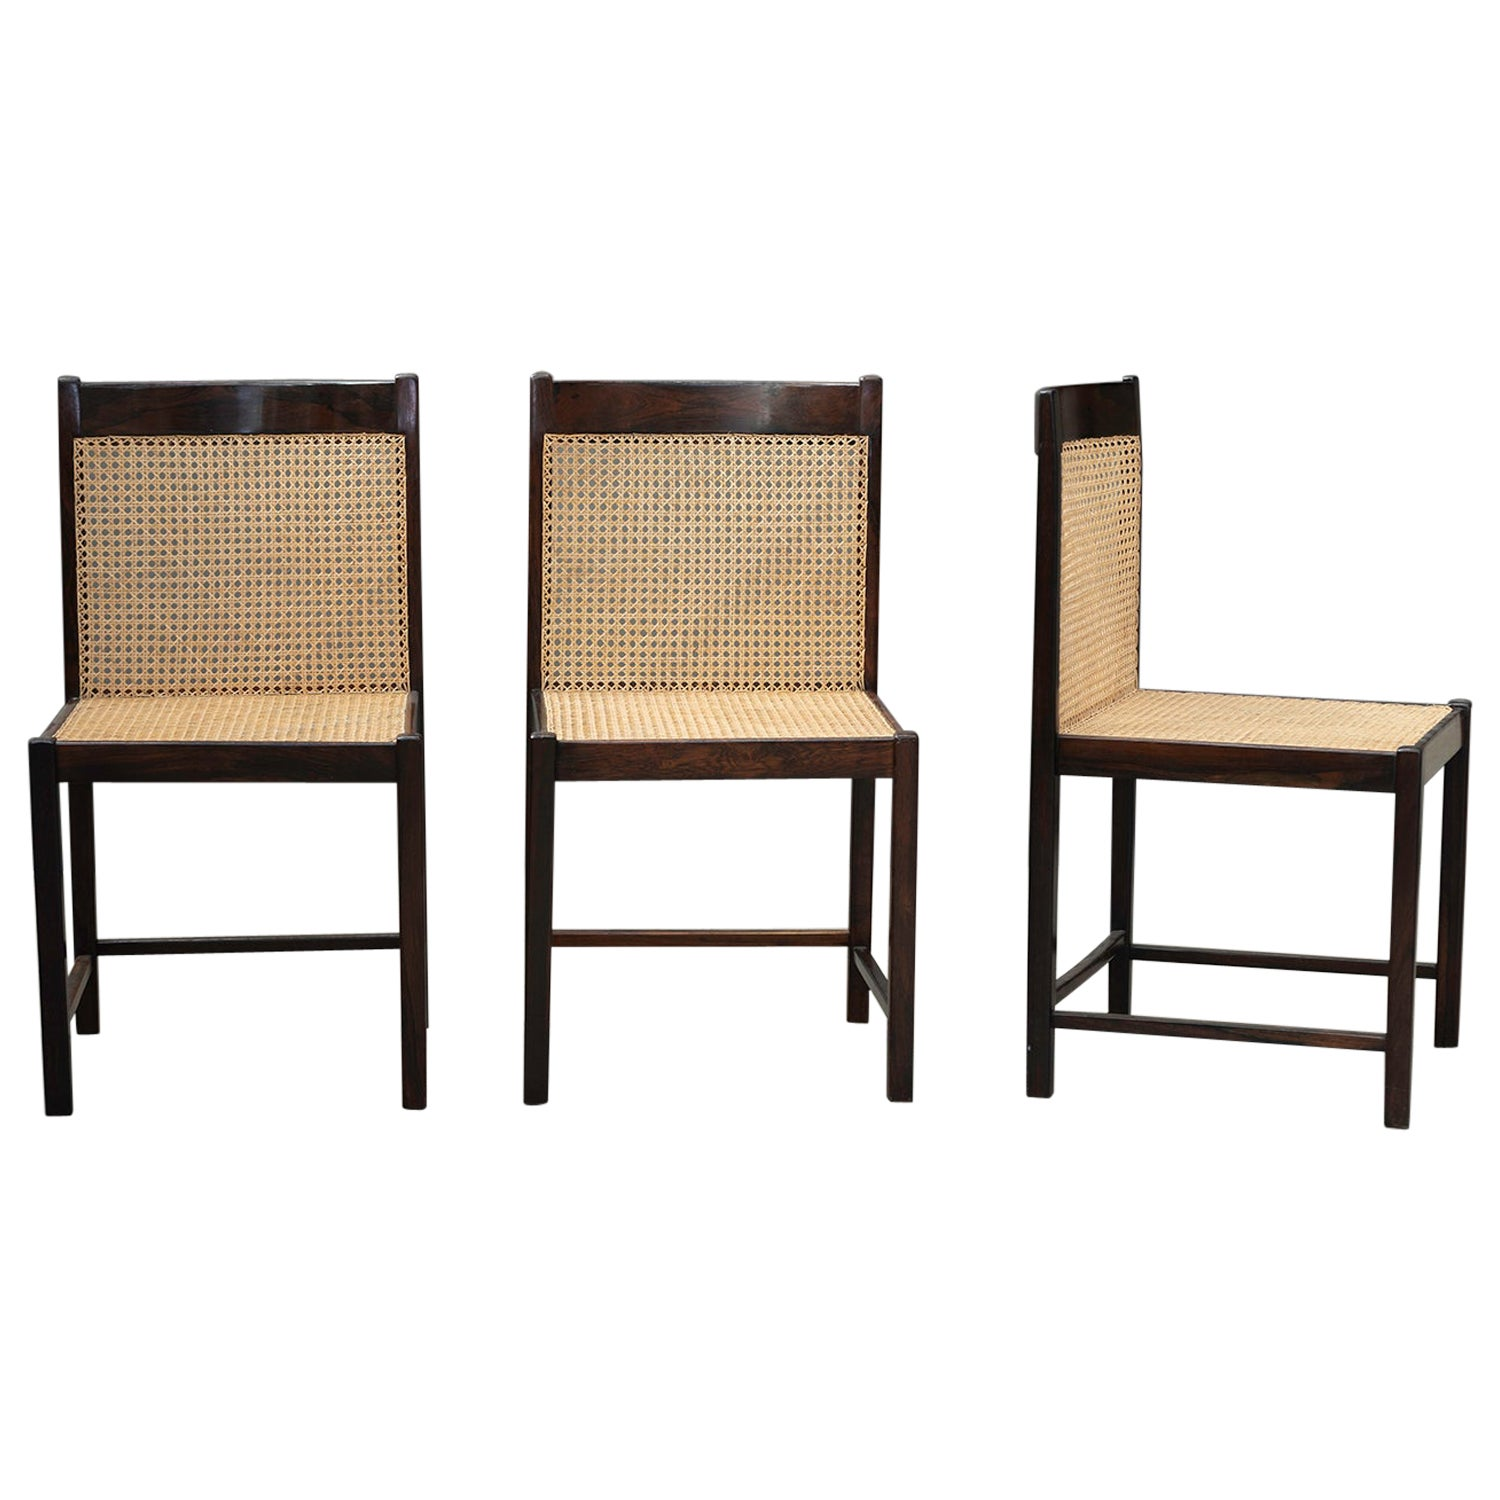 Set of Brazilian Rosewood and Straw Dining Chairs. Brazilian Midcentury Design